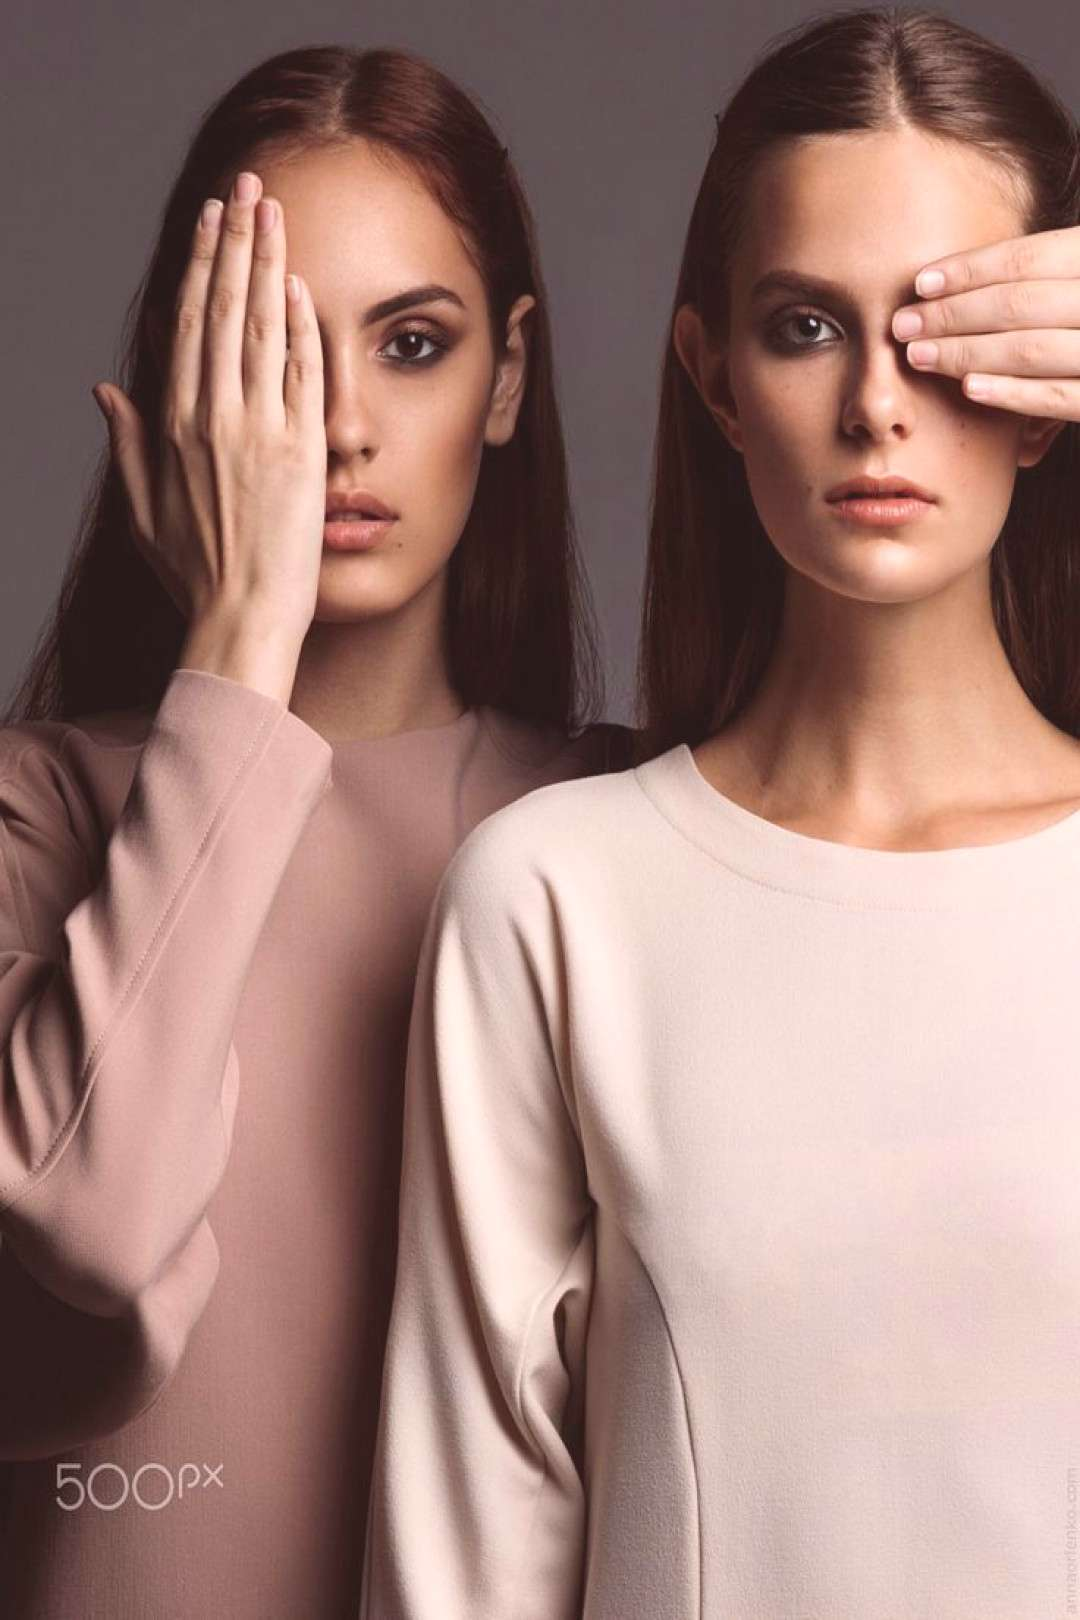 Photography Poses Image result for fashion editorial landscape two models - Dear Art | Leading Art